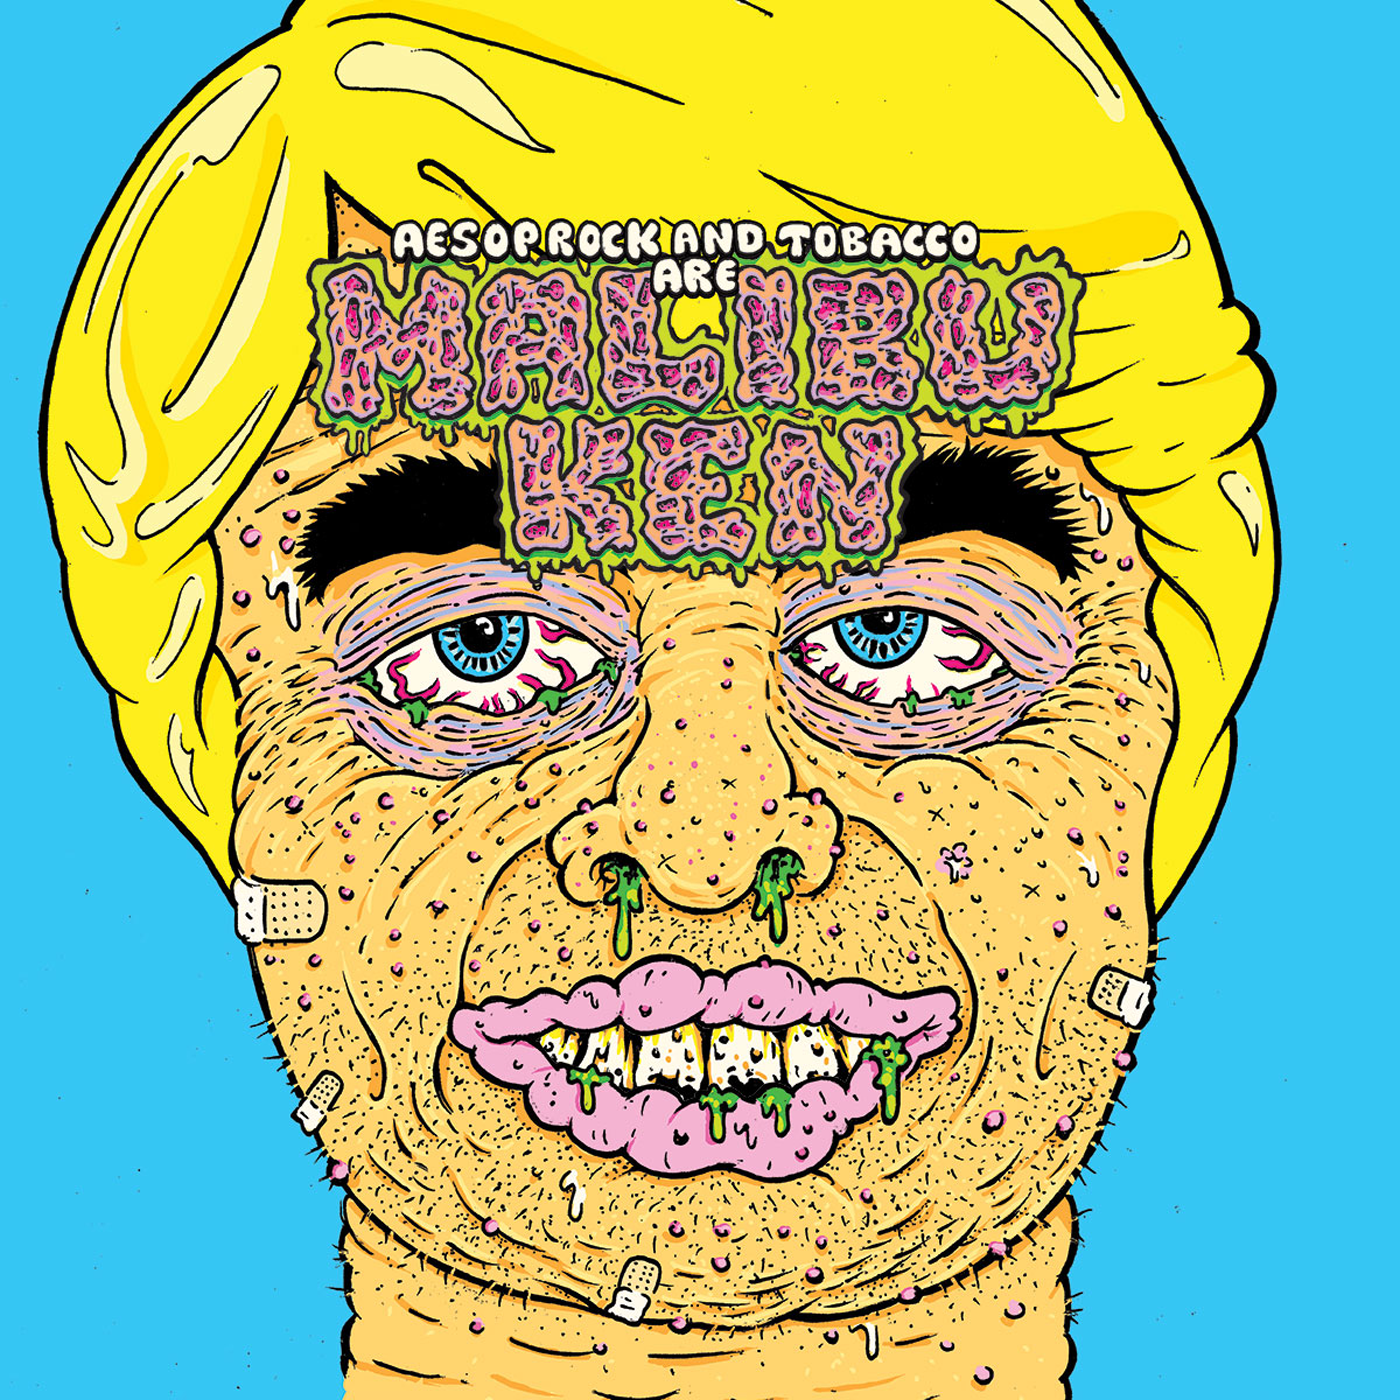 """Malibu Ken"" Album Art. Illustration of a close-up face of a disgusting man with boogers and zits and bandages and pus and bloodshot eyes."